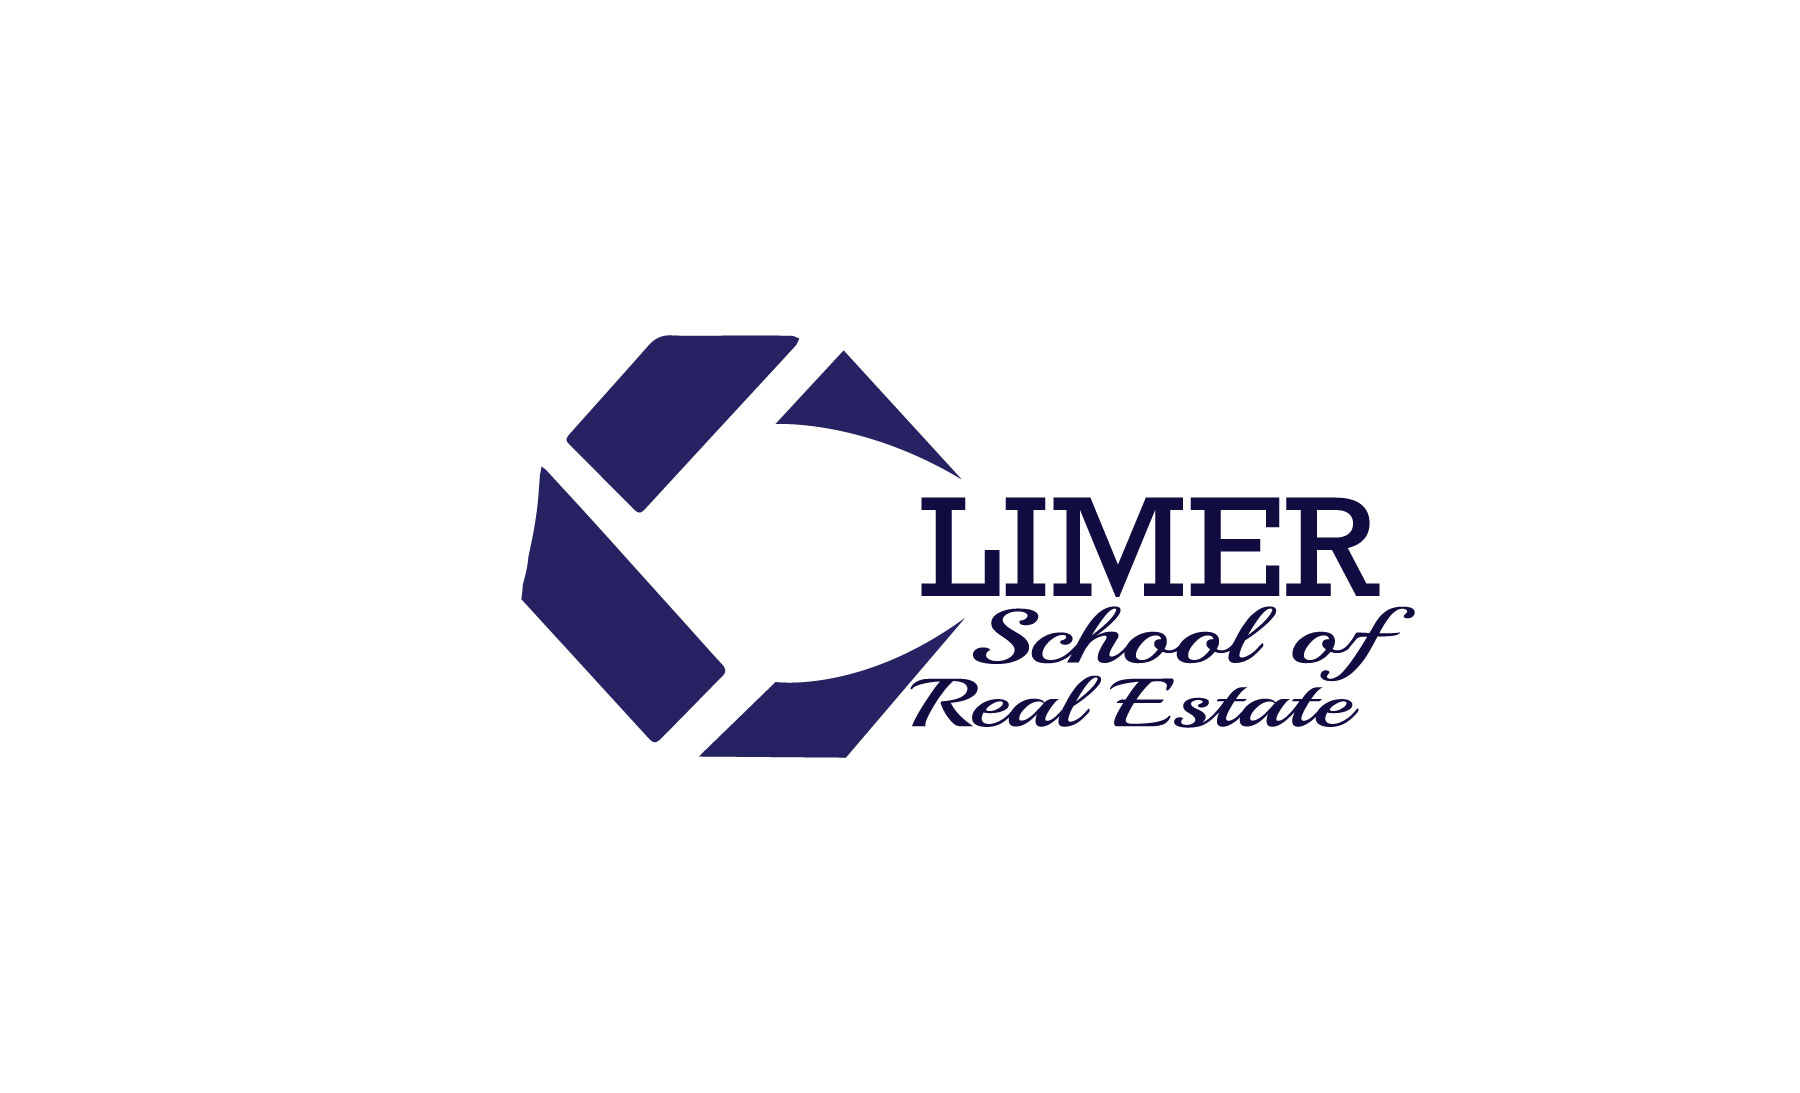 Climer Real Estate School